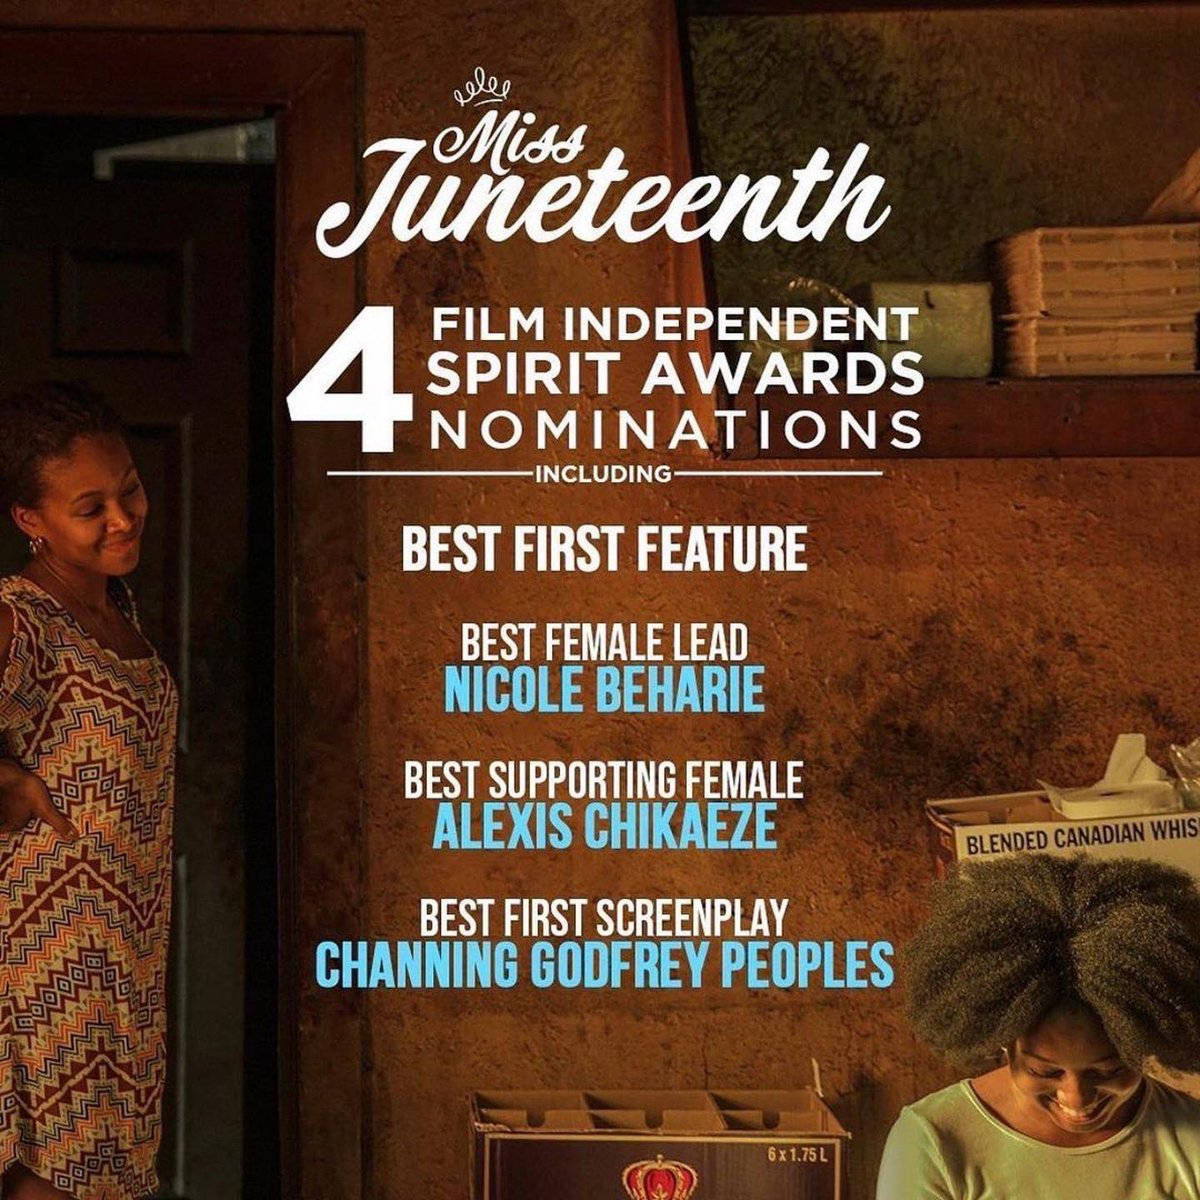 #MissJuneteenth was nominated for FOUR @filmindependent #SpiritAwards 😲!! Best First Feature & Best First Screenplay!!! This blew my mind! What an honor! Congratulations @AlexisChikaeze (Best Supporting Female) &  @NikkiBeharie (Best Female Lead)!!Thank you @filmindependent 🙏🏾👸🏾